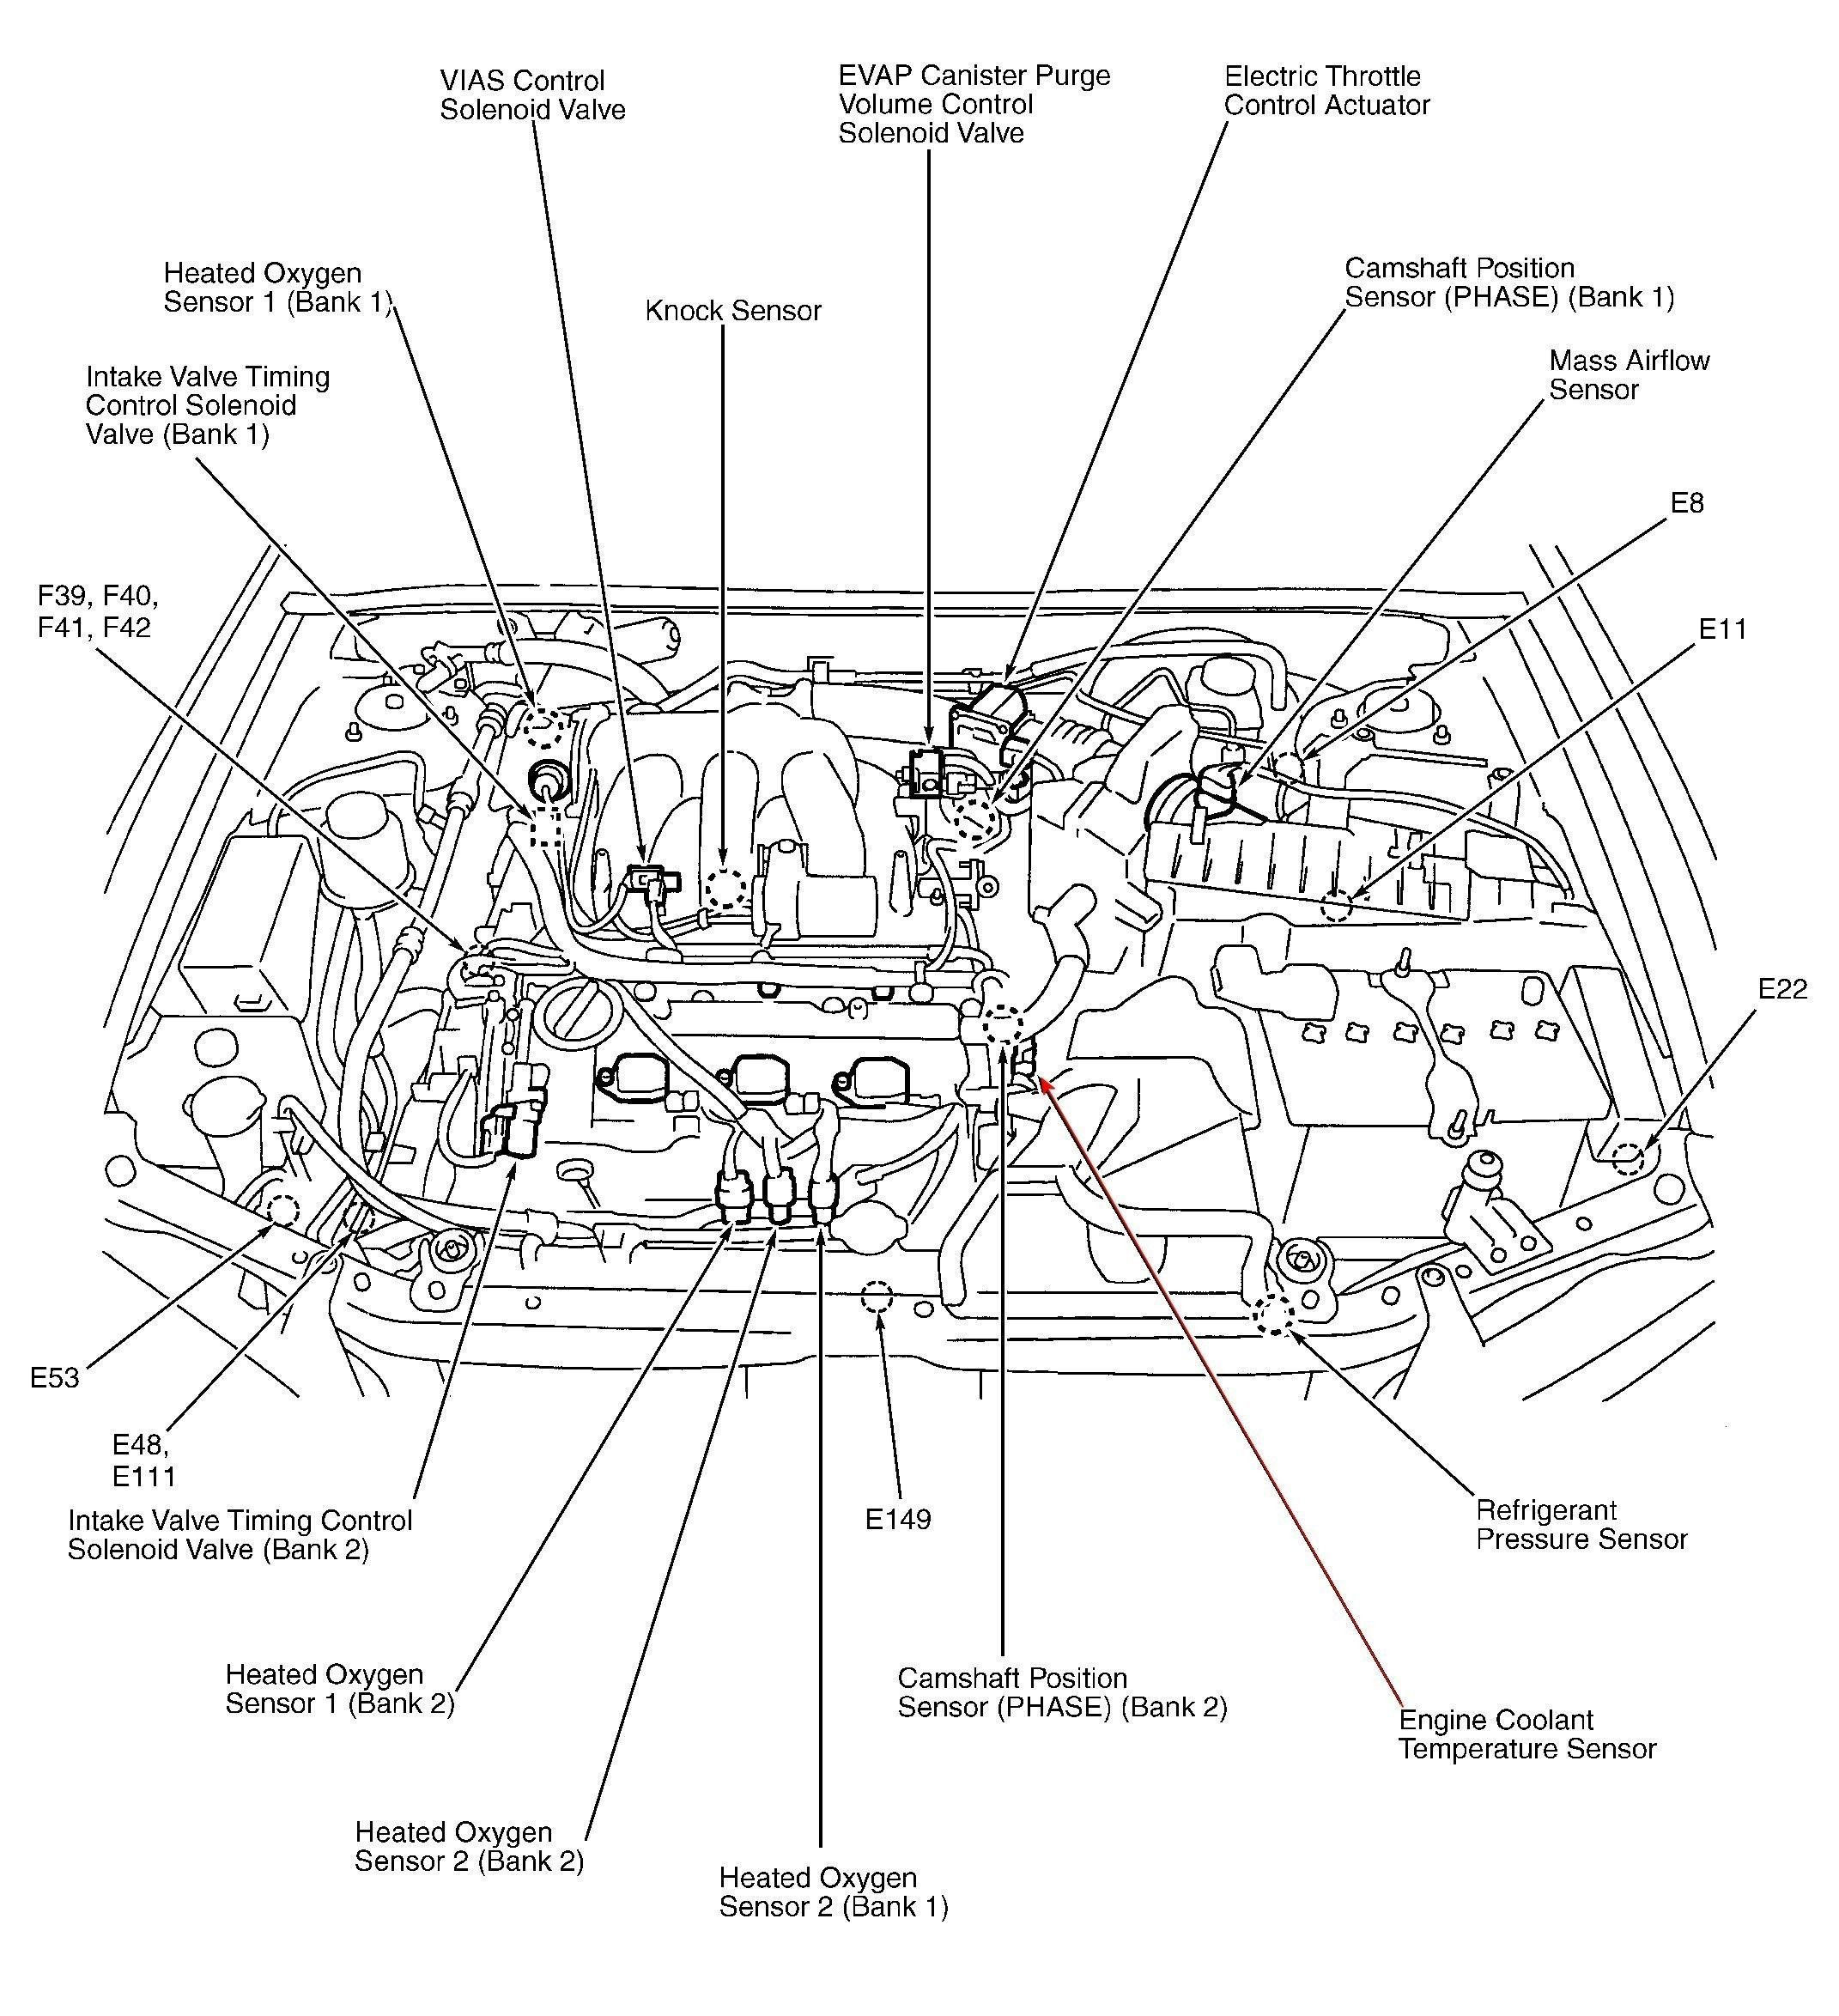 land cruiser door lock wiring diagram 1996 1996 nissan sentra engine diagram wiring diagram post helloo  1996 nissan sentra engine diagram